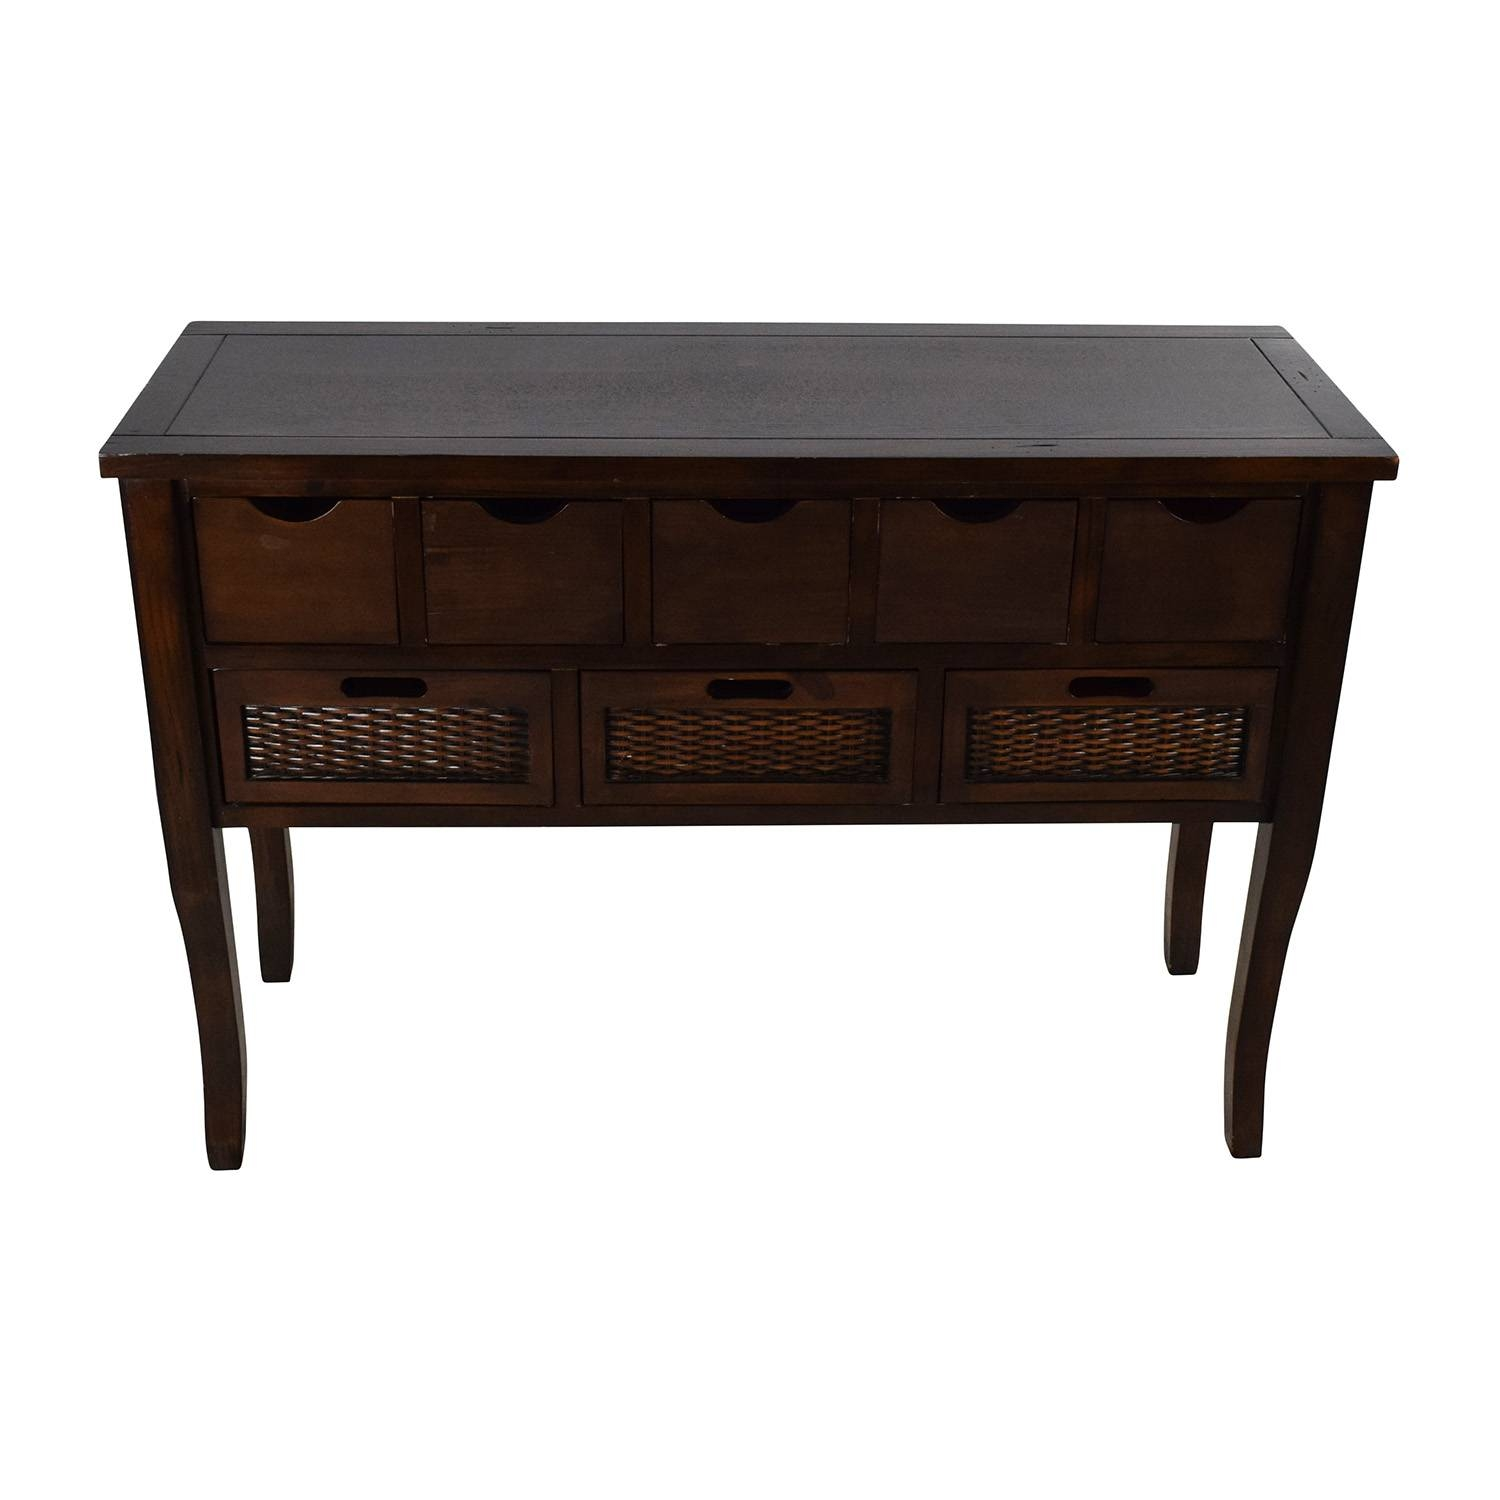 Inspiration about 65% Off – Unknown Brown Wood Multi Drawer Sideboard / Storage Throughout Multi Drawer Sideboard (#3 of 20)